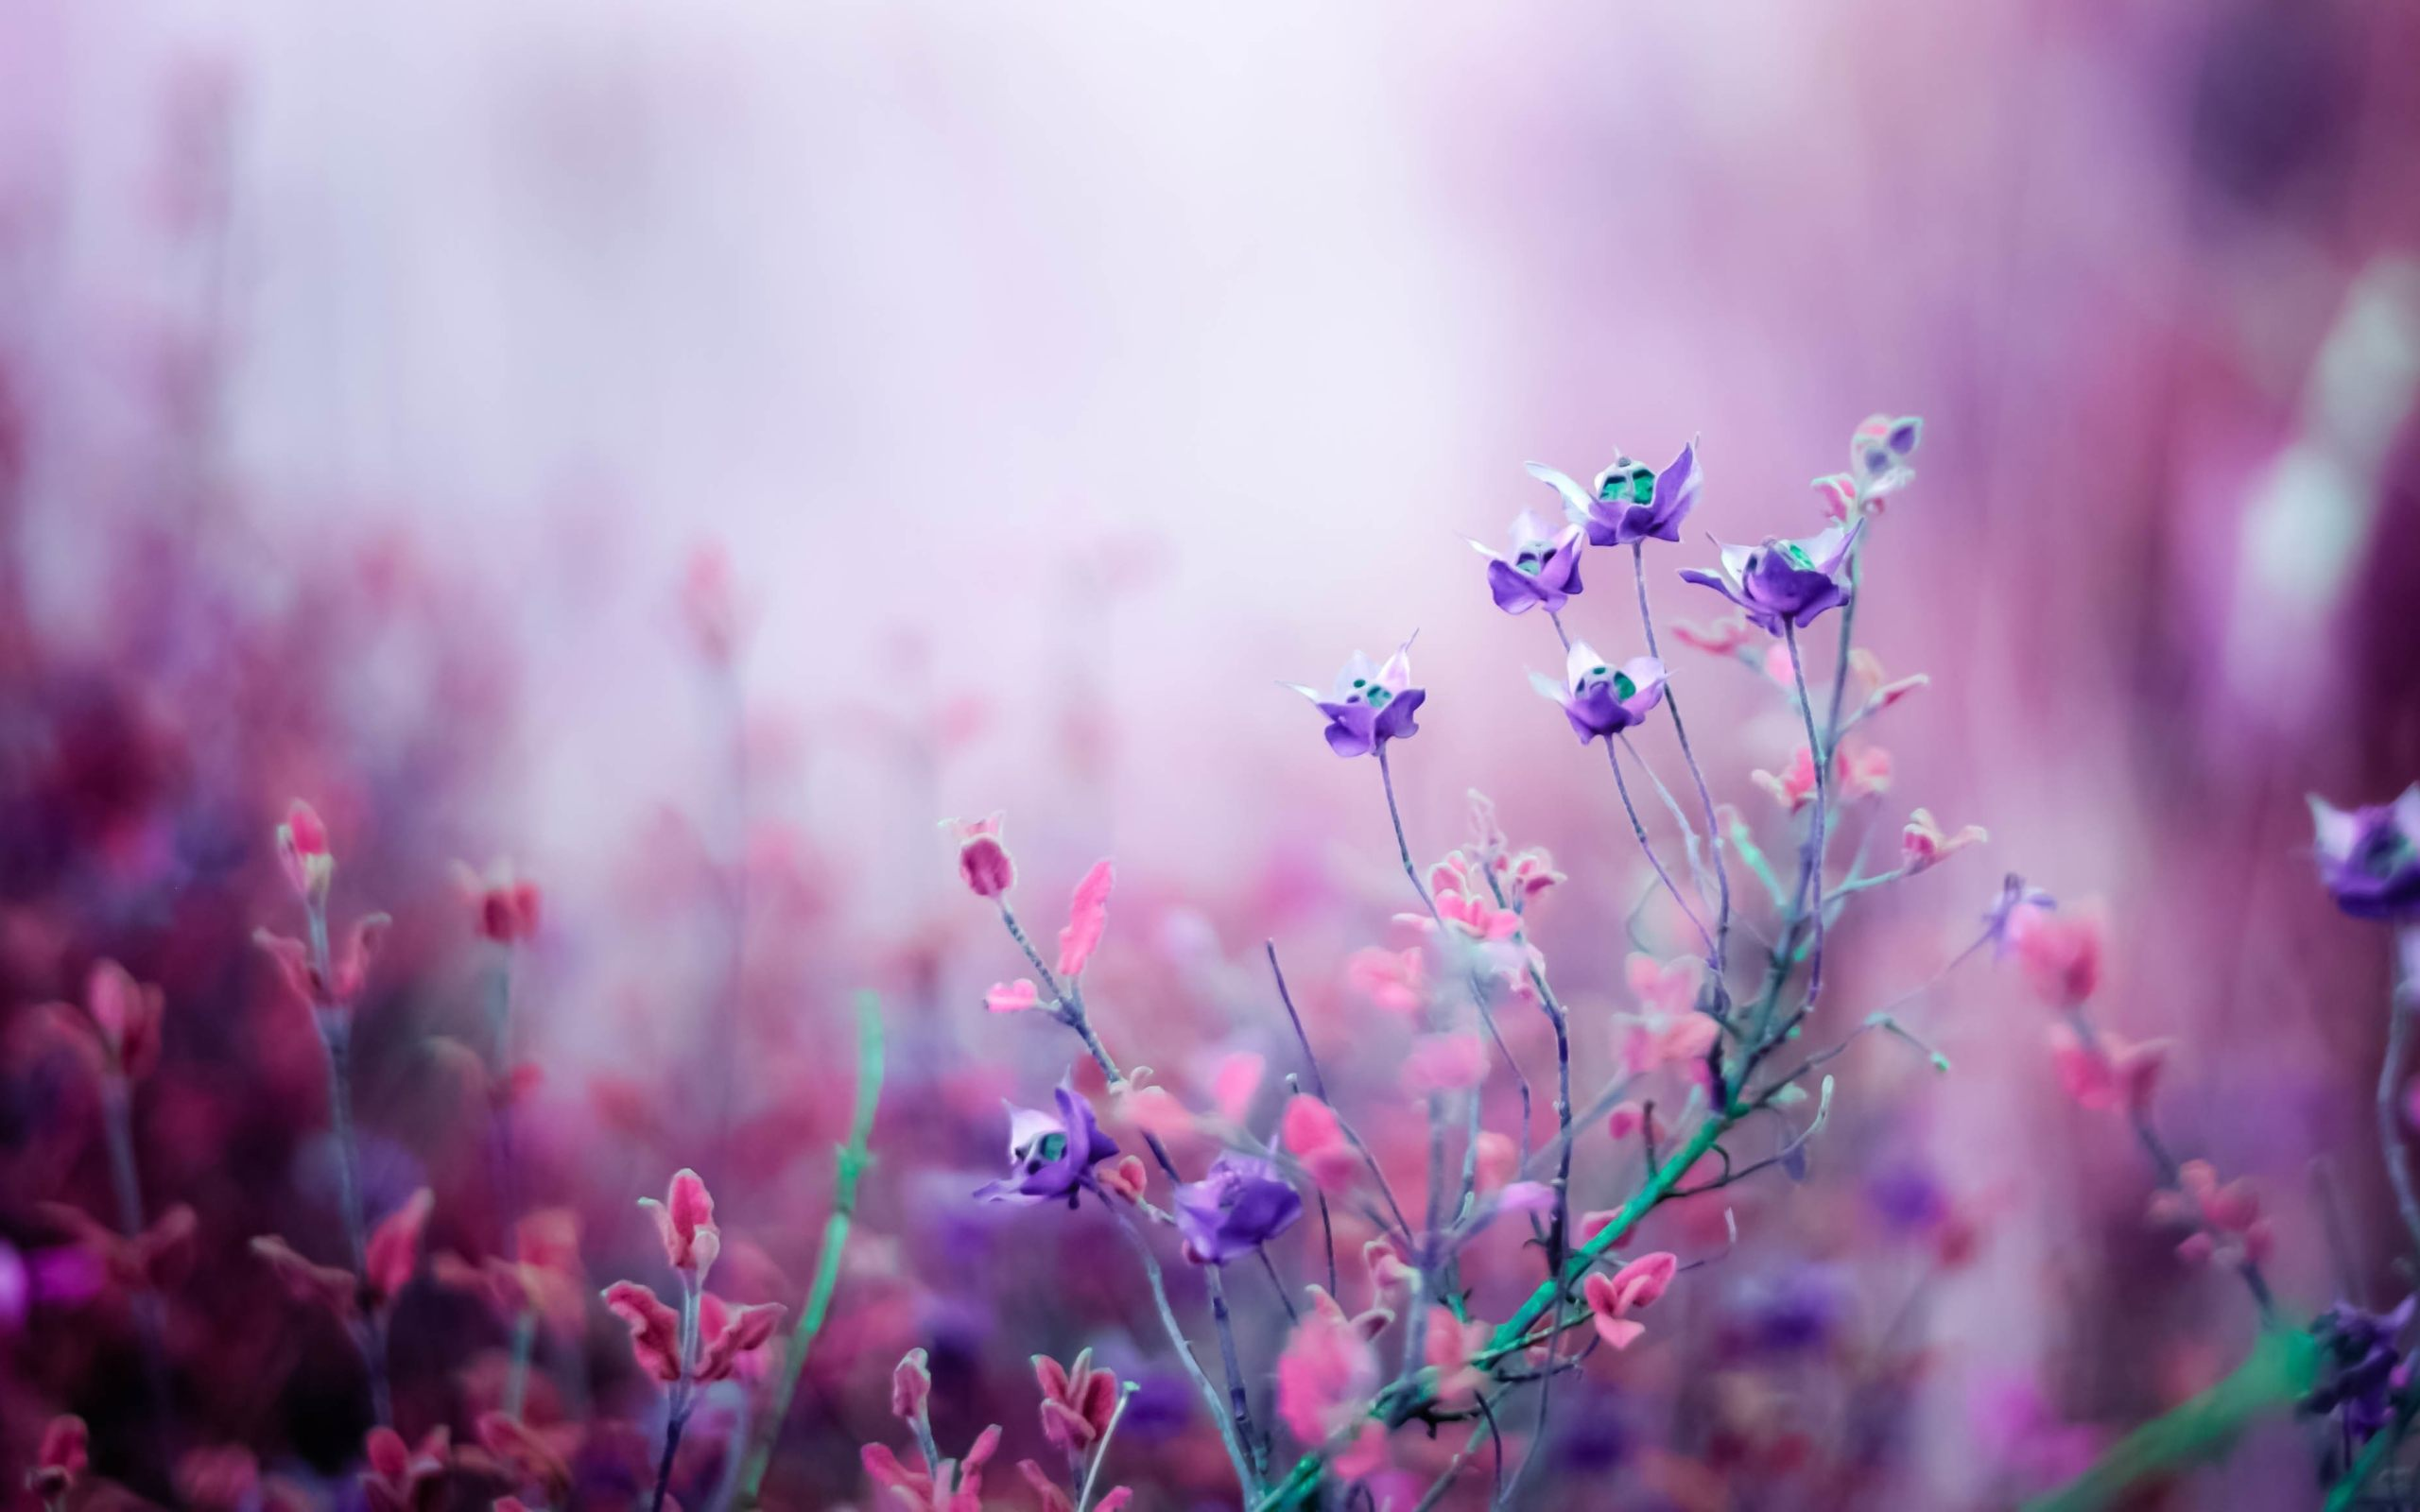 Download purple and white flower wallpaper gallery purple and white flower wallpaper mightylinksfo